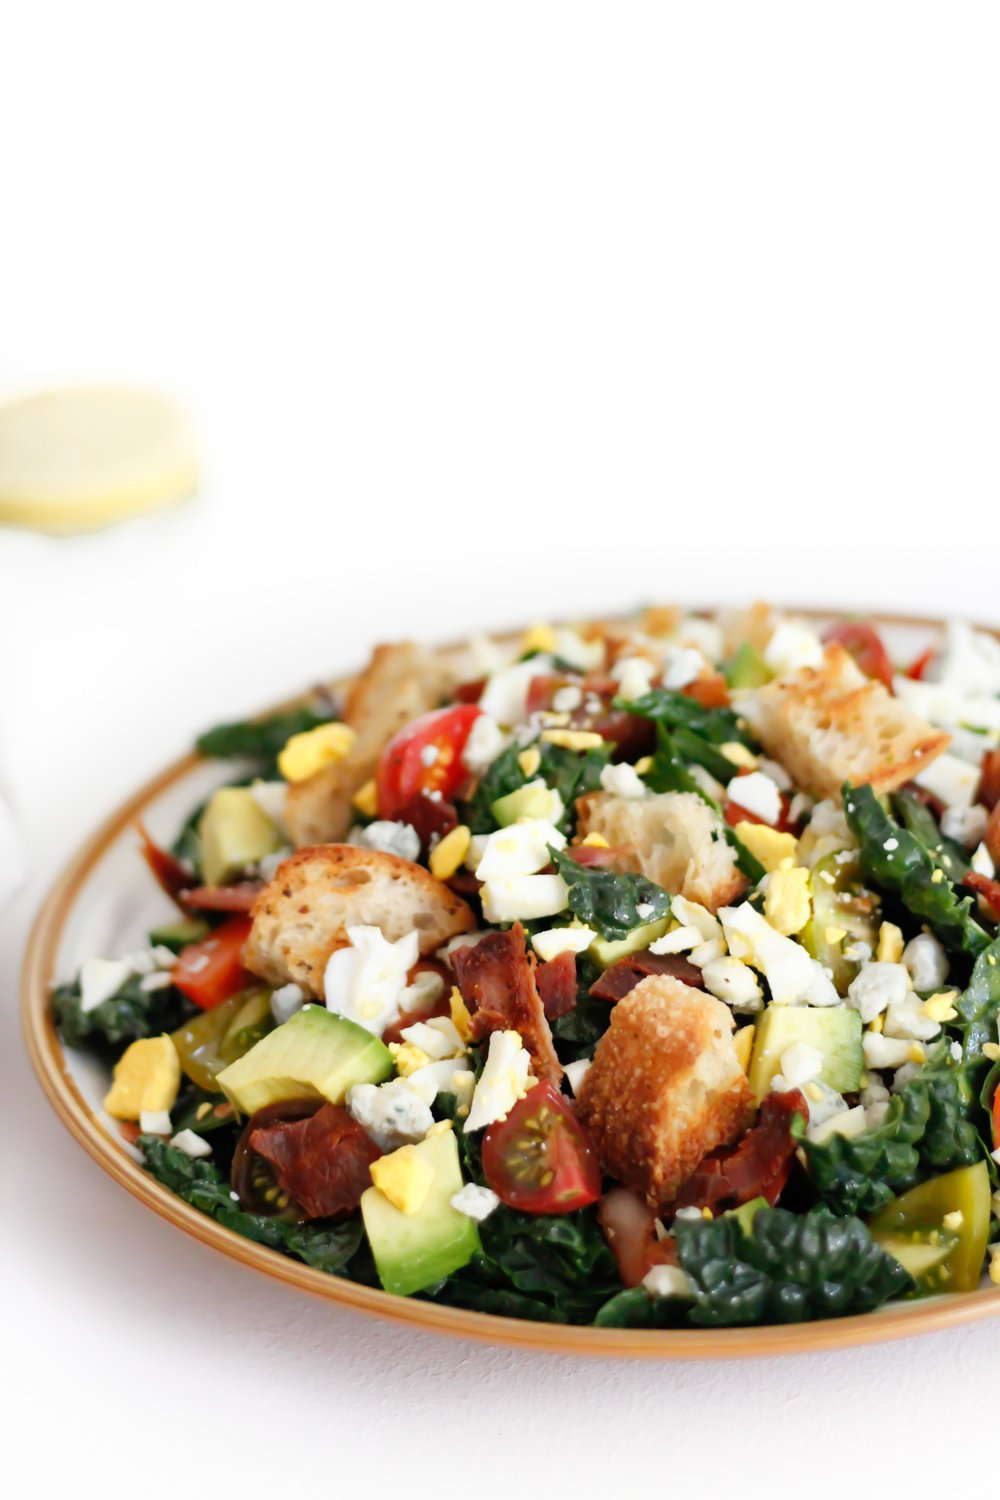 Copy of Kale cobb salad